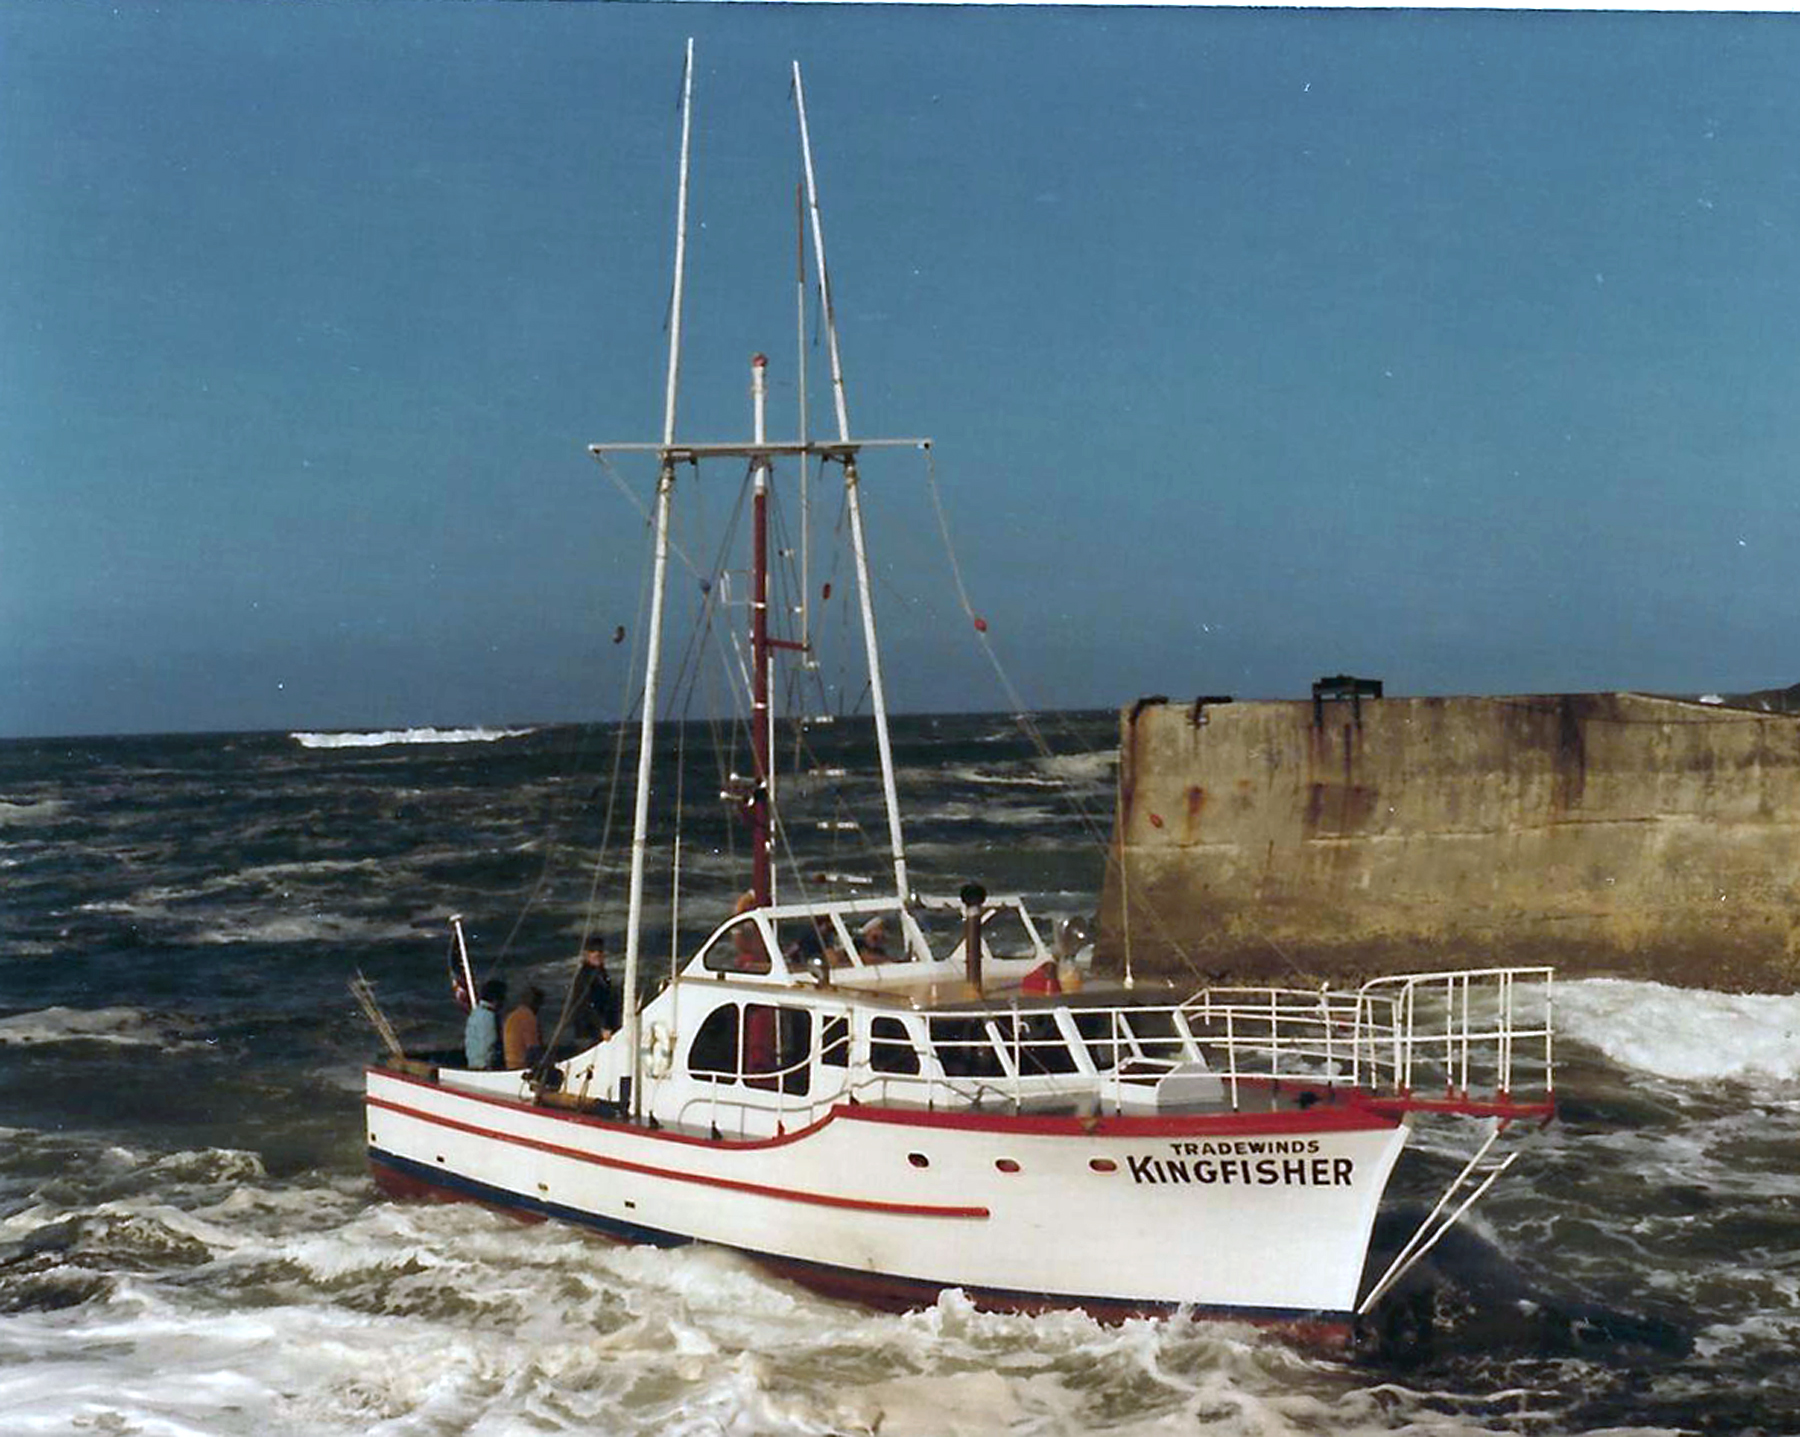 Demise of depoe bay s historic boat tradewinds kingfisher for Depoe bay fishing charters